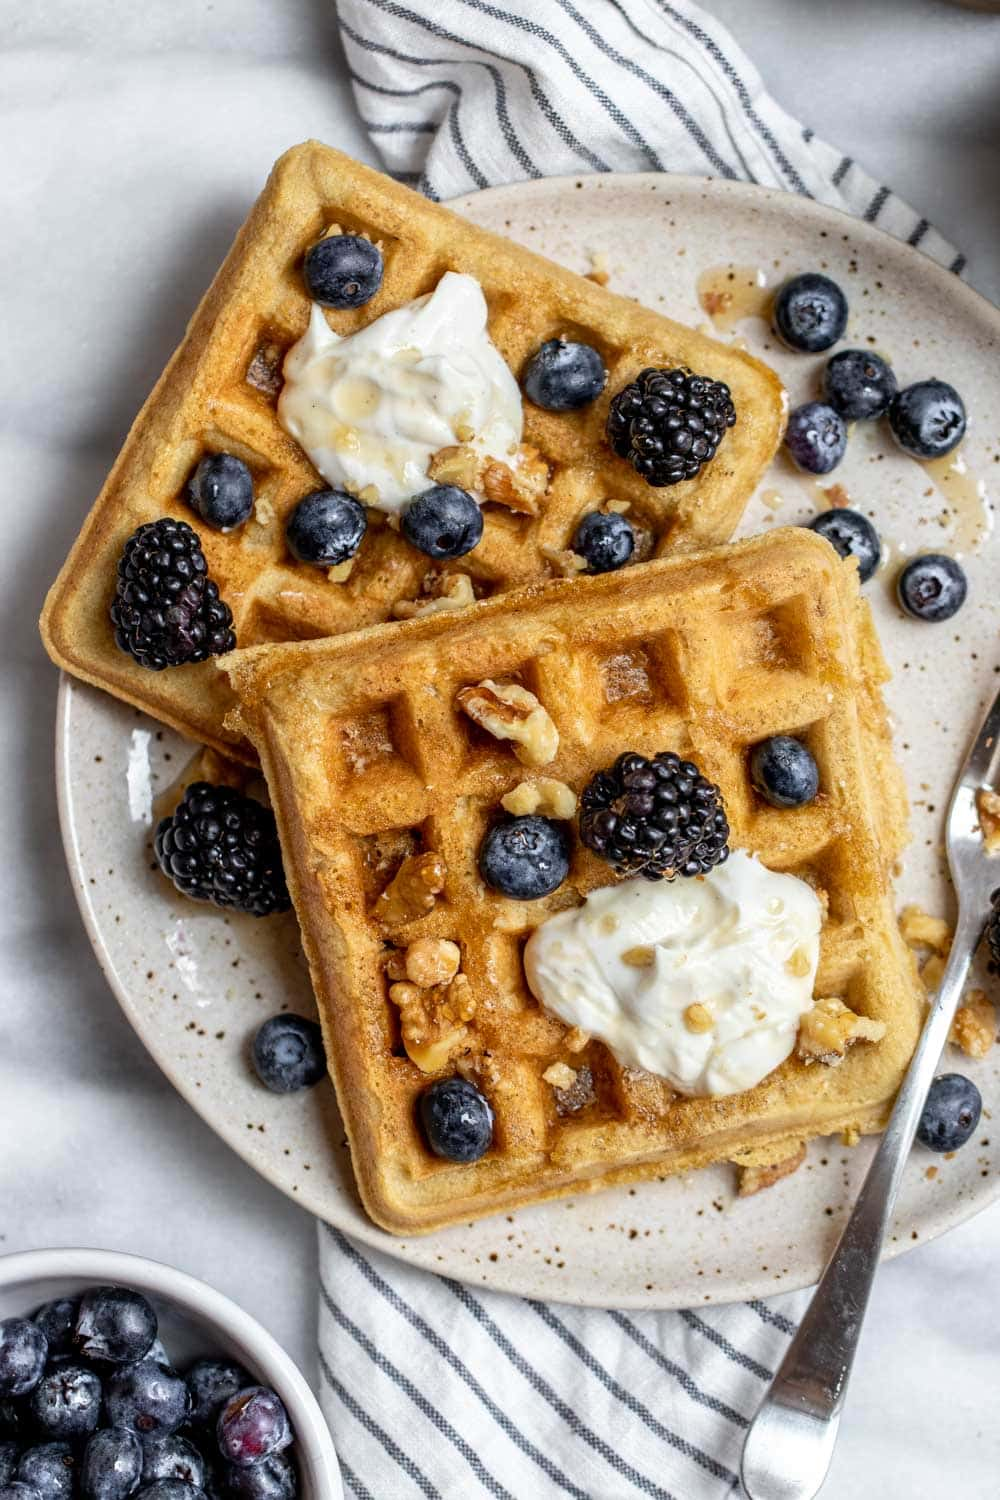 Two almond flour waffles on a plate with yogurt and berries on top.